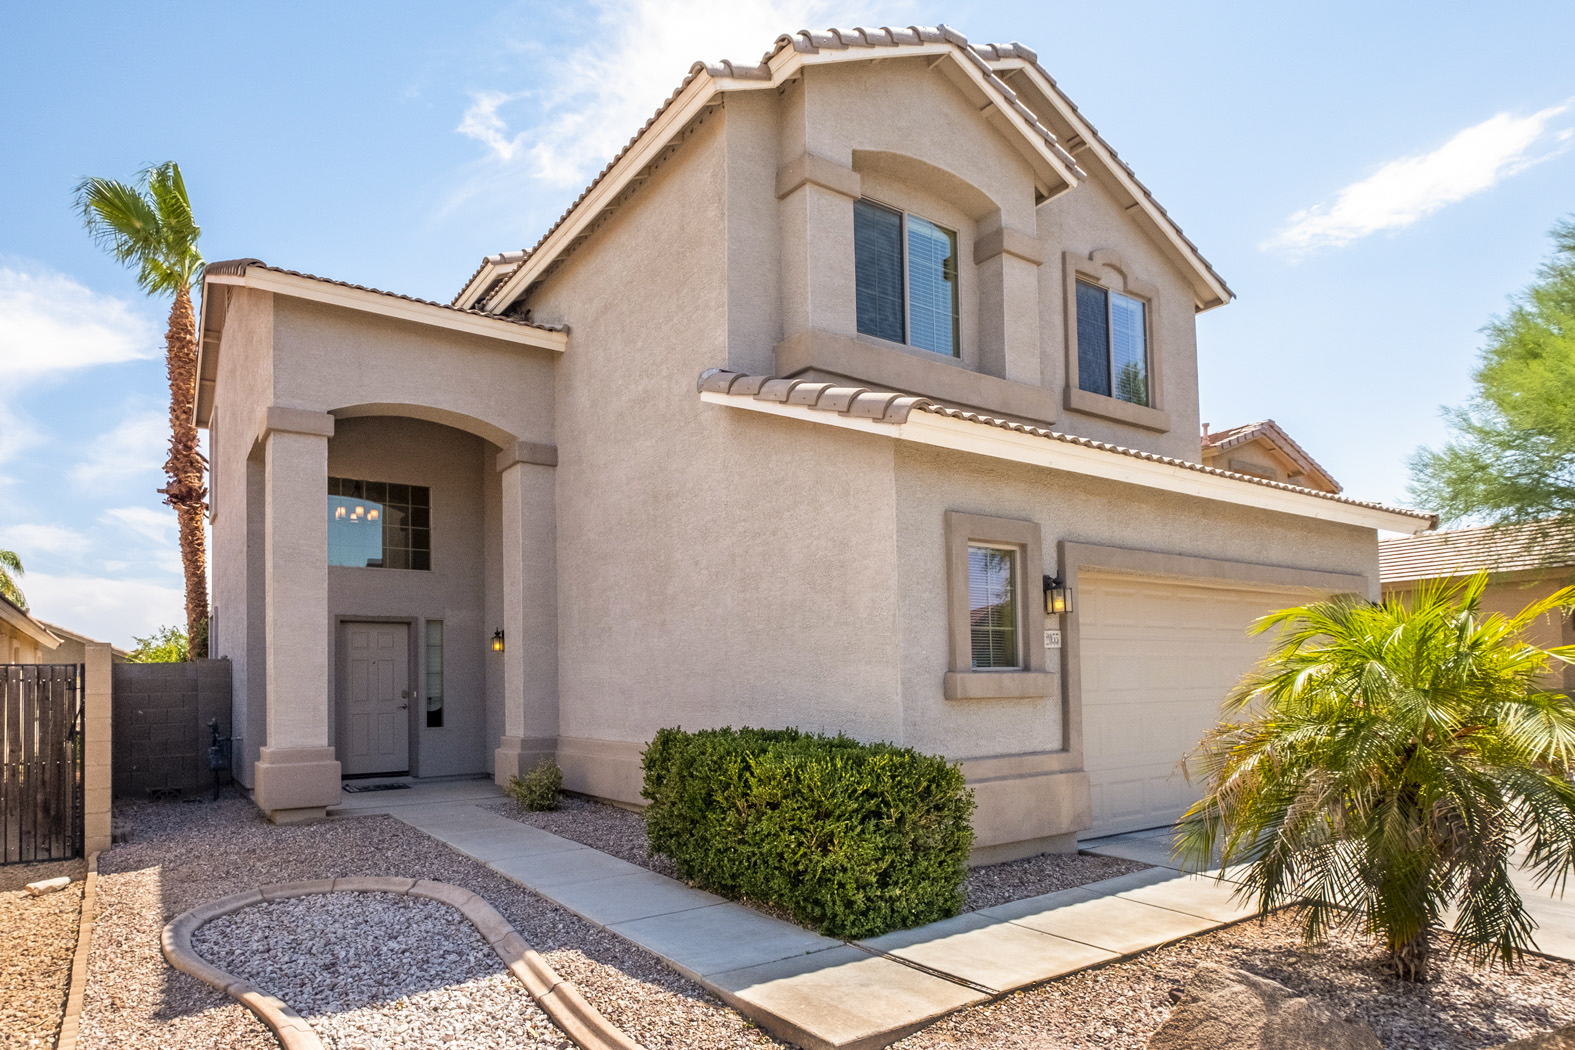 JUST LISTED - 2055 W Jasper Butte Dr - Village at San Tan Heights | Amy Jones Group